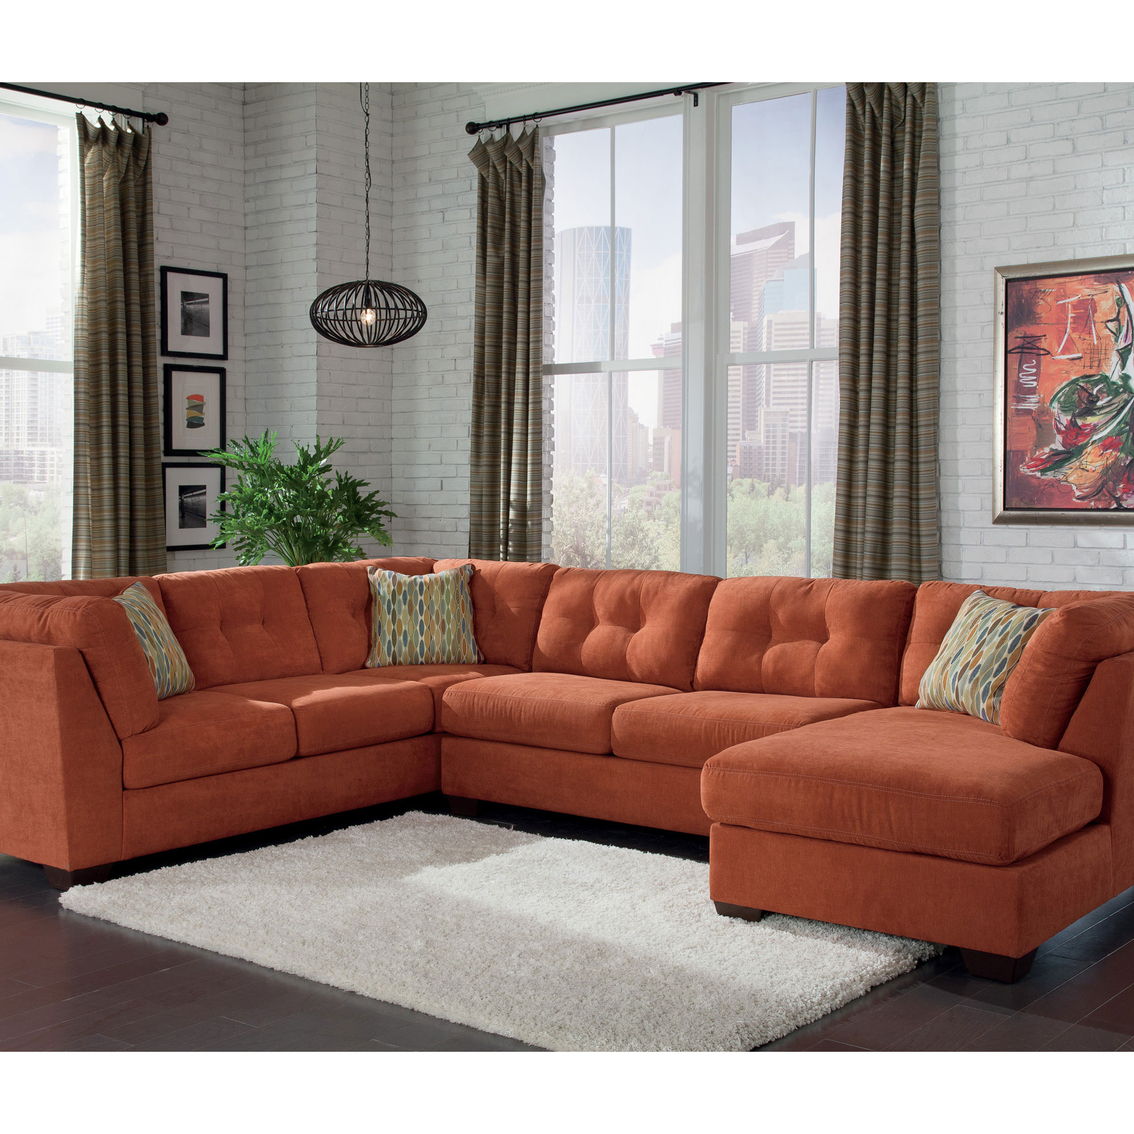 Benchcraft delta city 3 pc sectional sofa with raf chaise for Ashley microfiber sectional with chaise